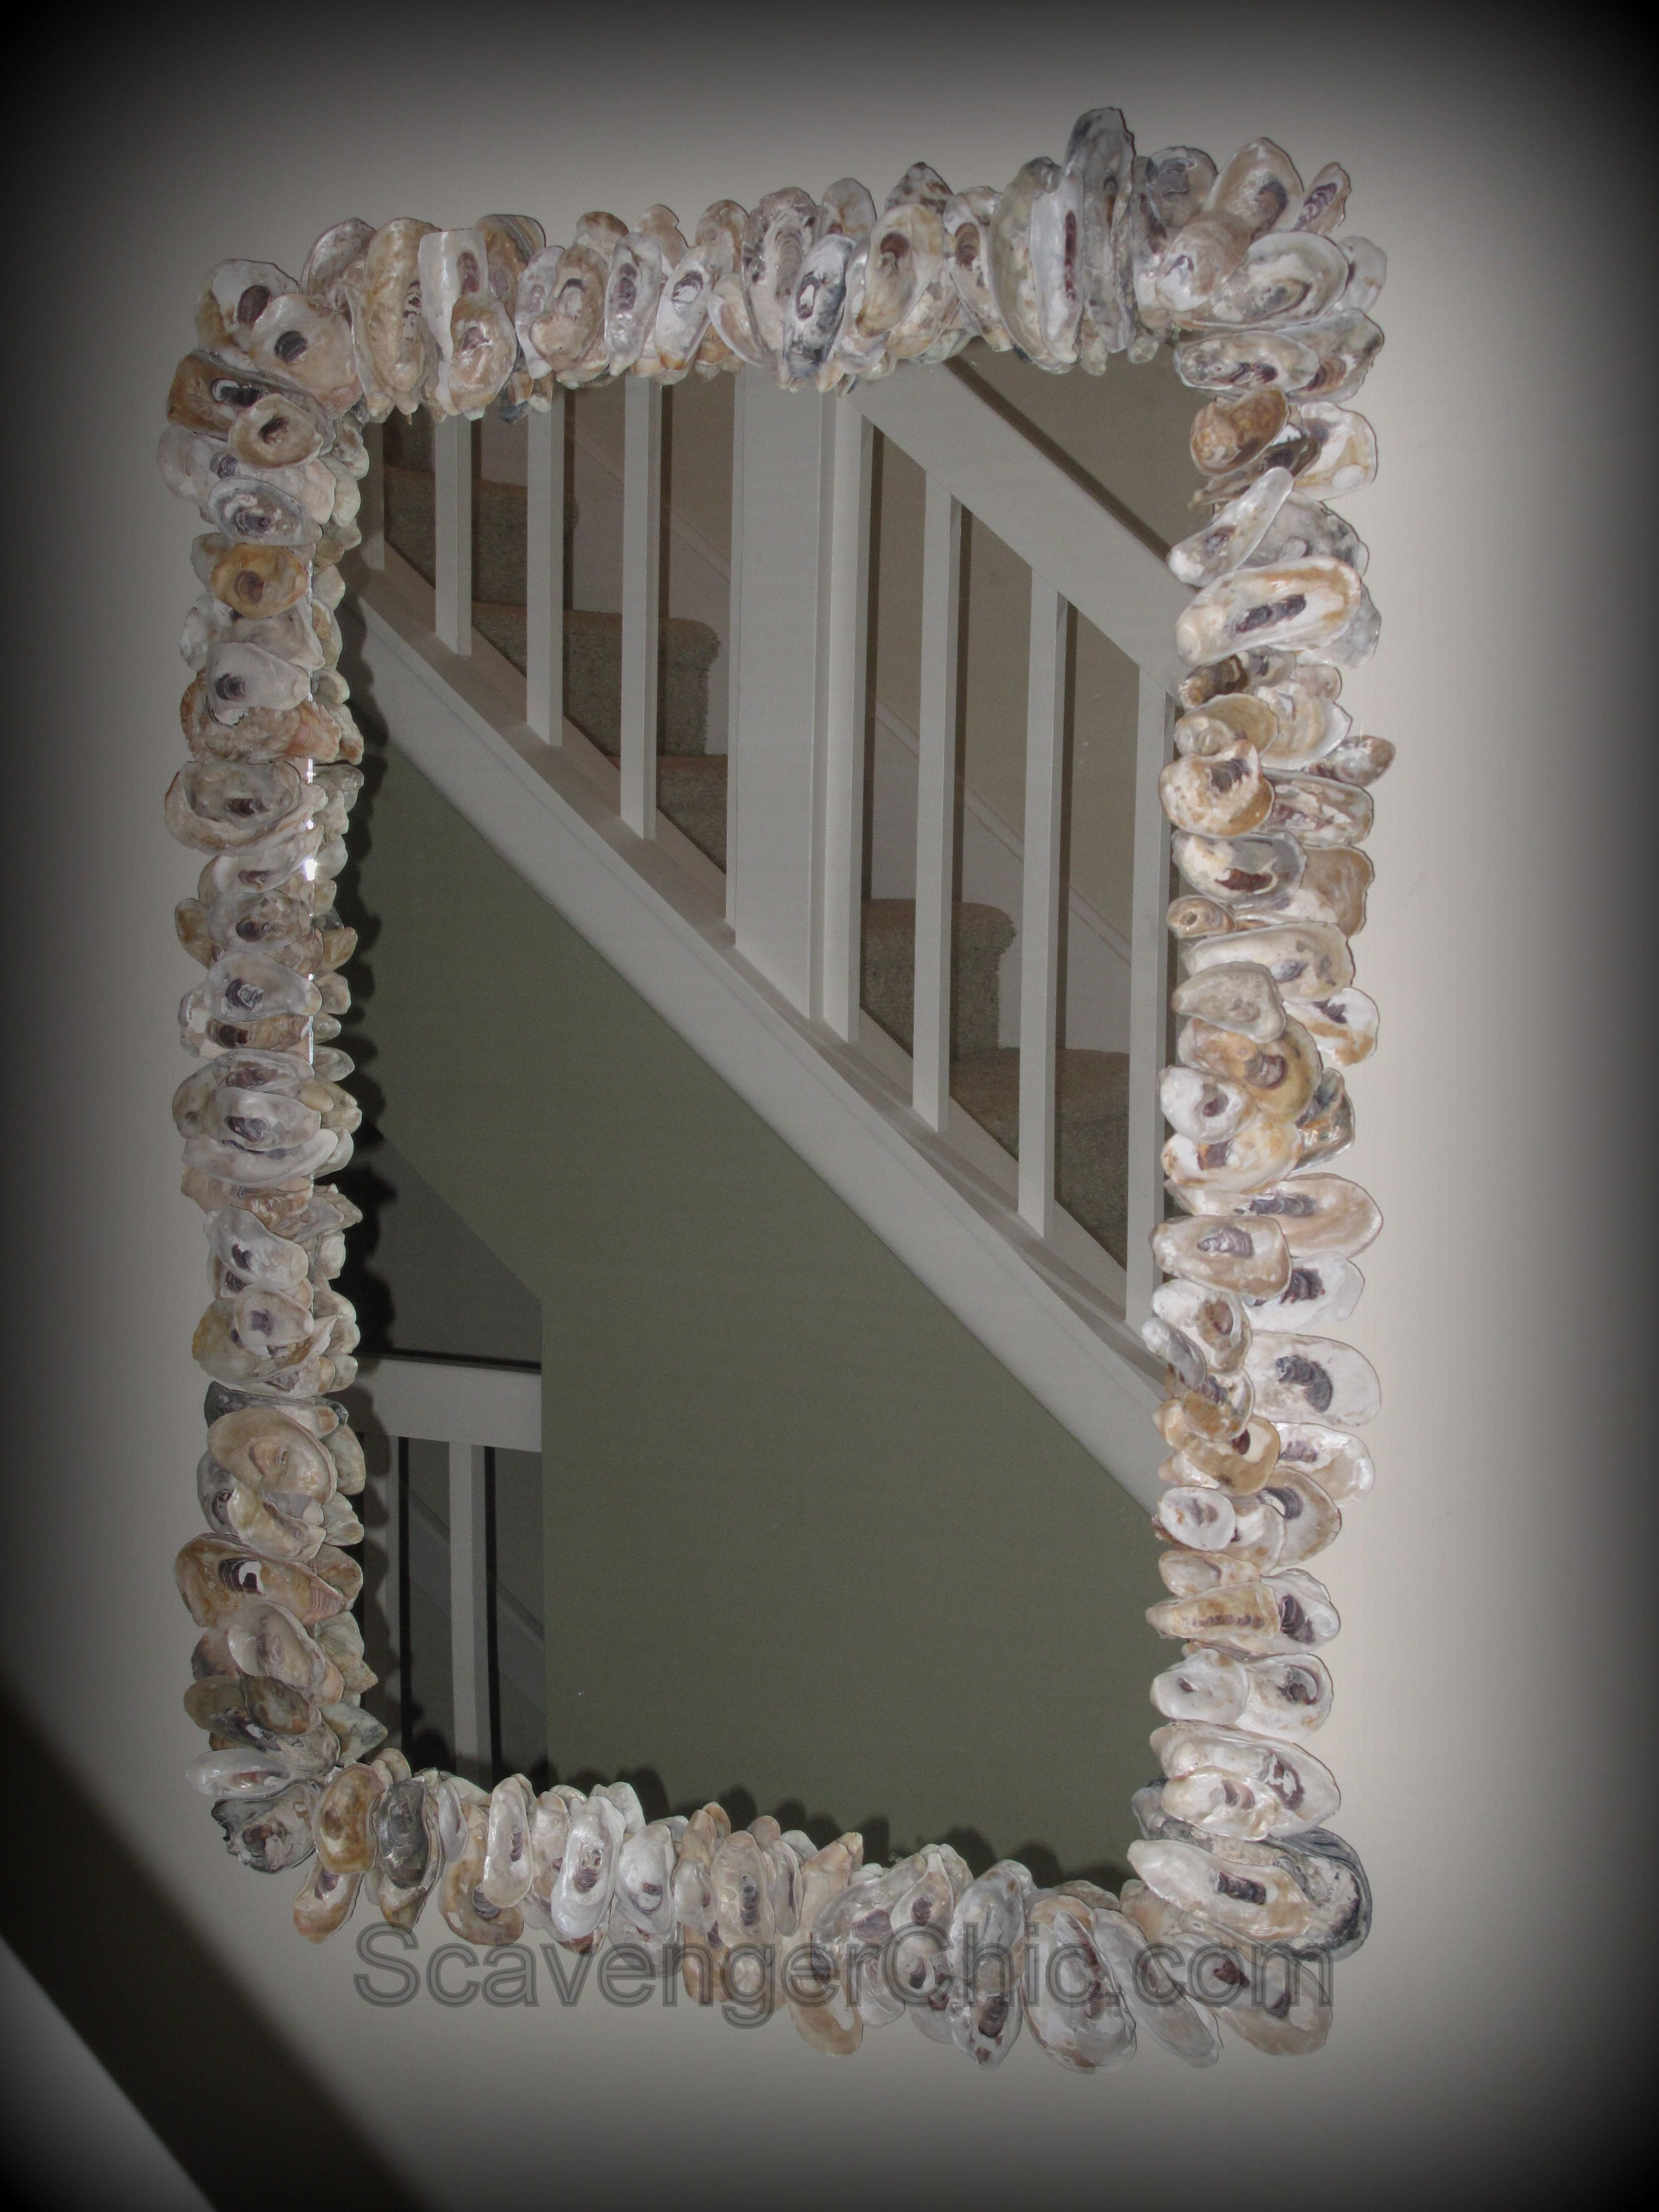 Oyster Shell Mirror Diy Scavenger Chic